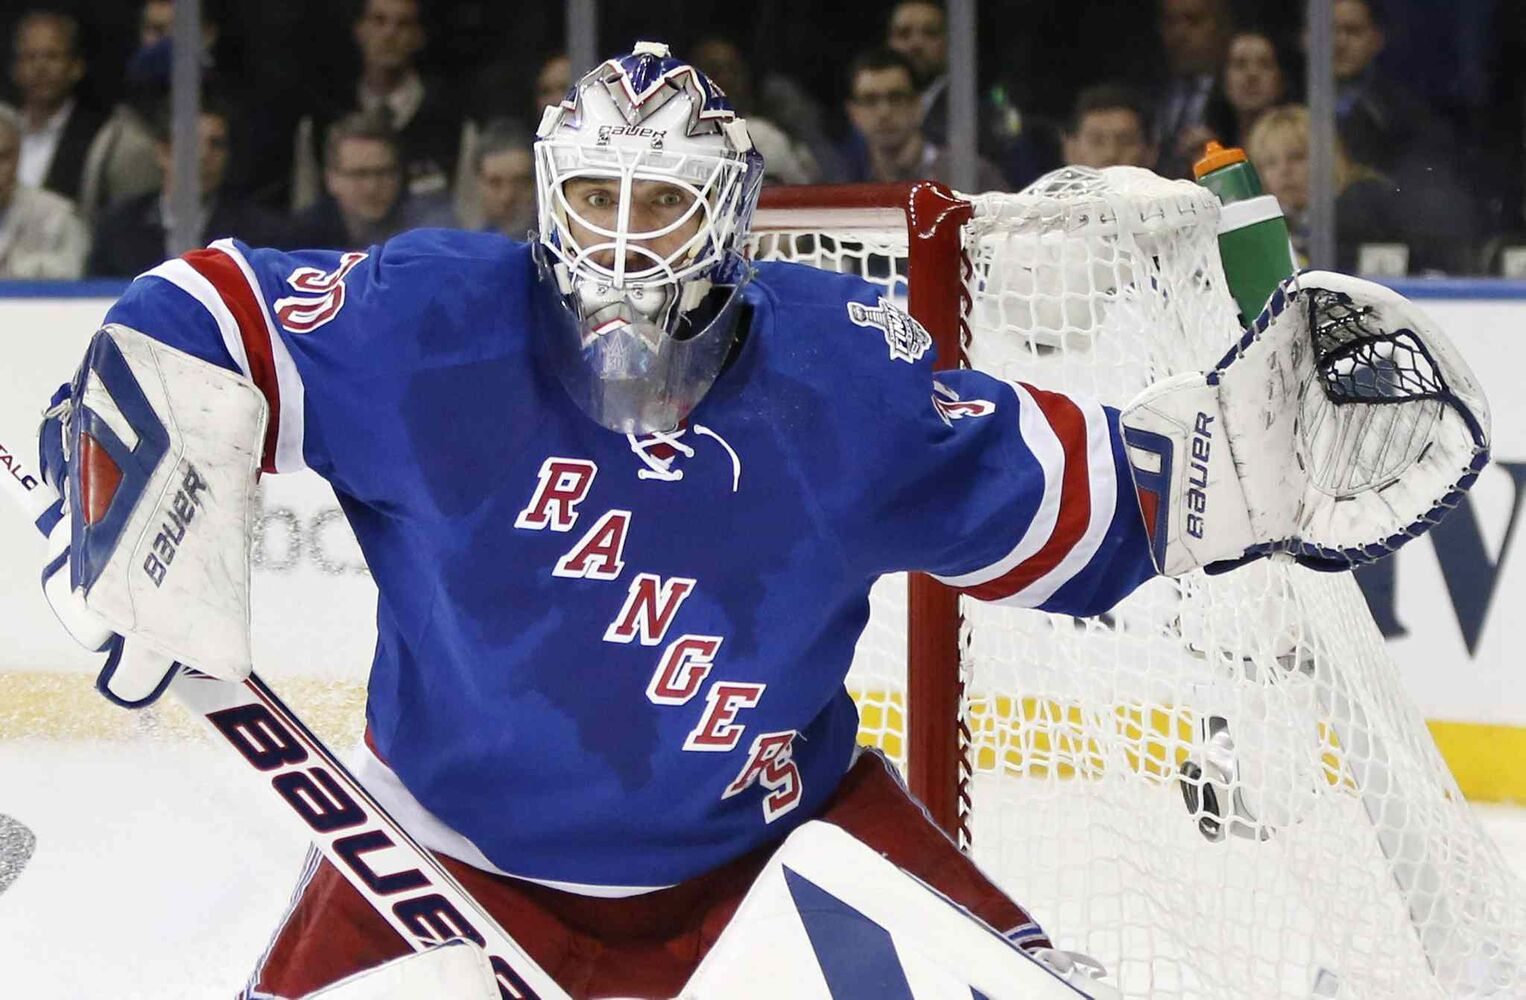 New York Rangers' goalie Henrik Lundqvist (30) looks for the rebound after a shot by the Los Angeles Kings in the first period during Game 4 of the NHL hockey Stanley Cup Final.